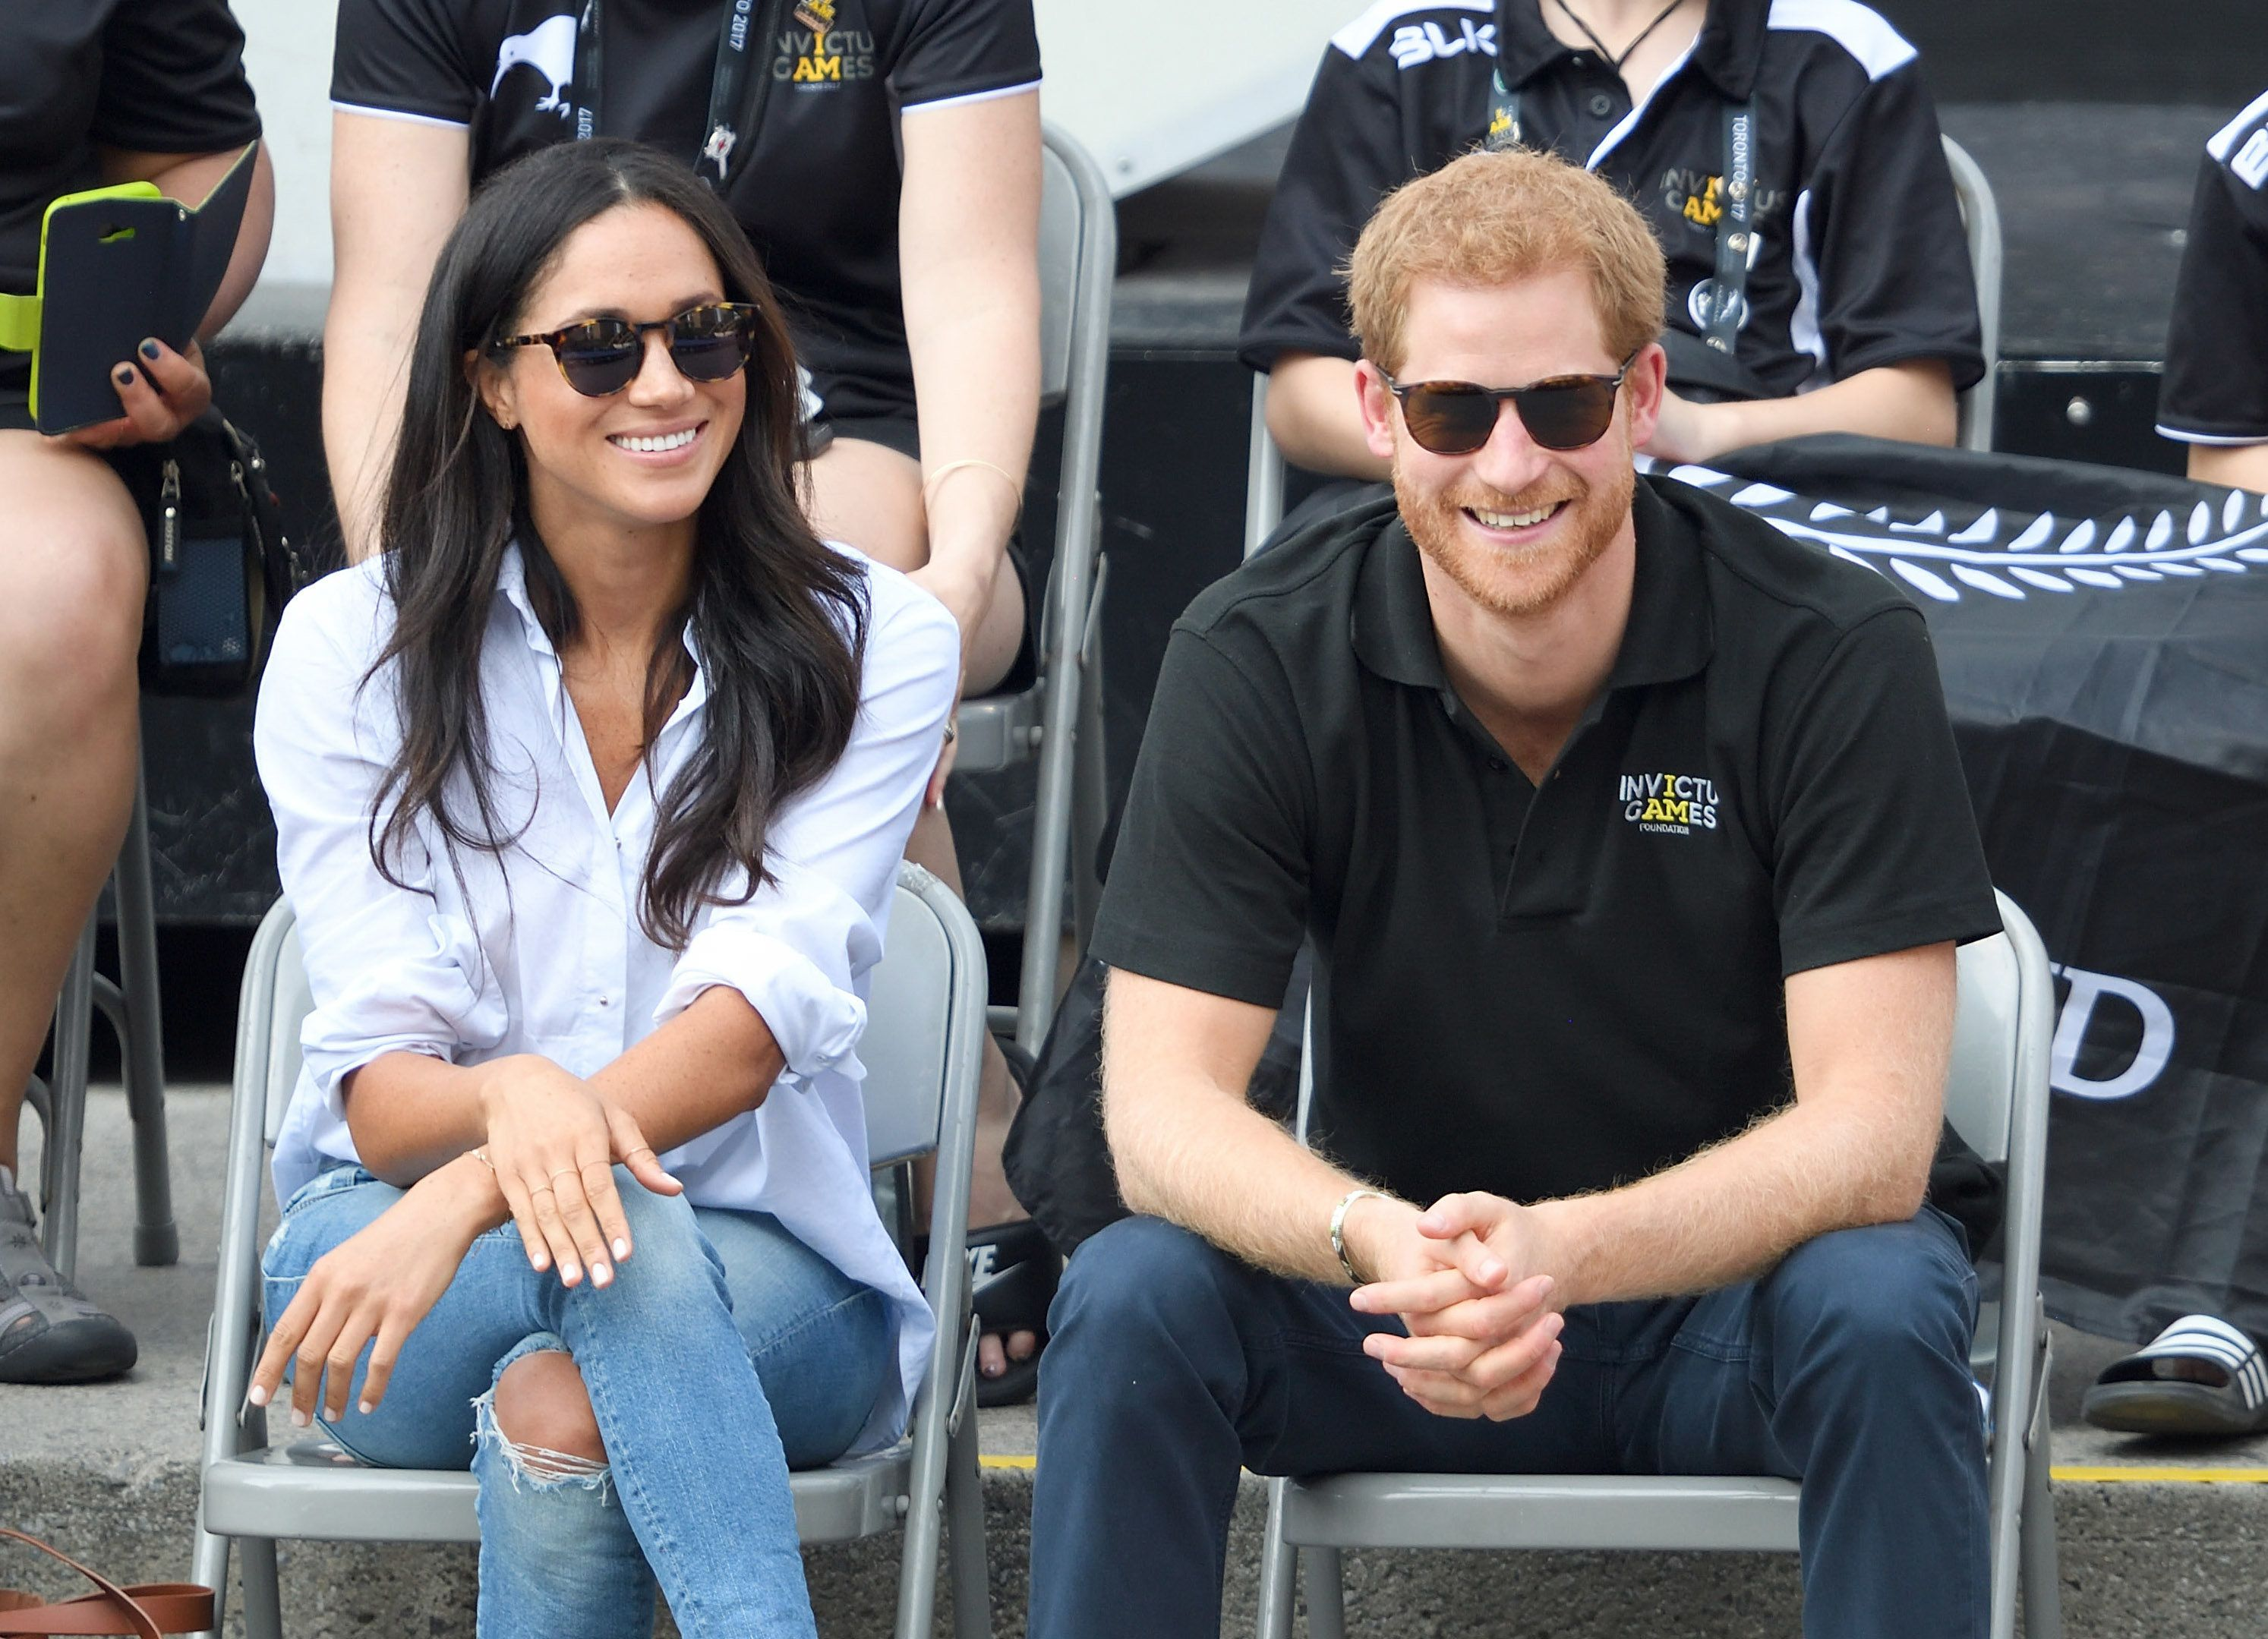 Prince Harry is 'closer than EVER' to Charles because of Meghan Markle